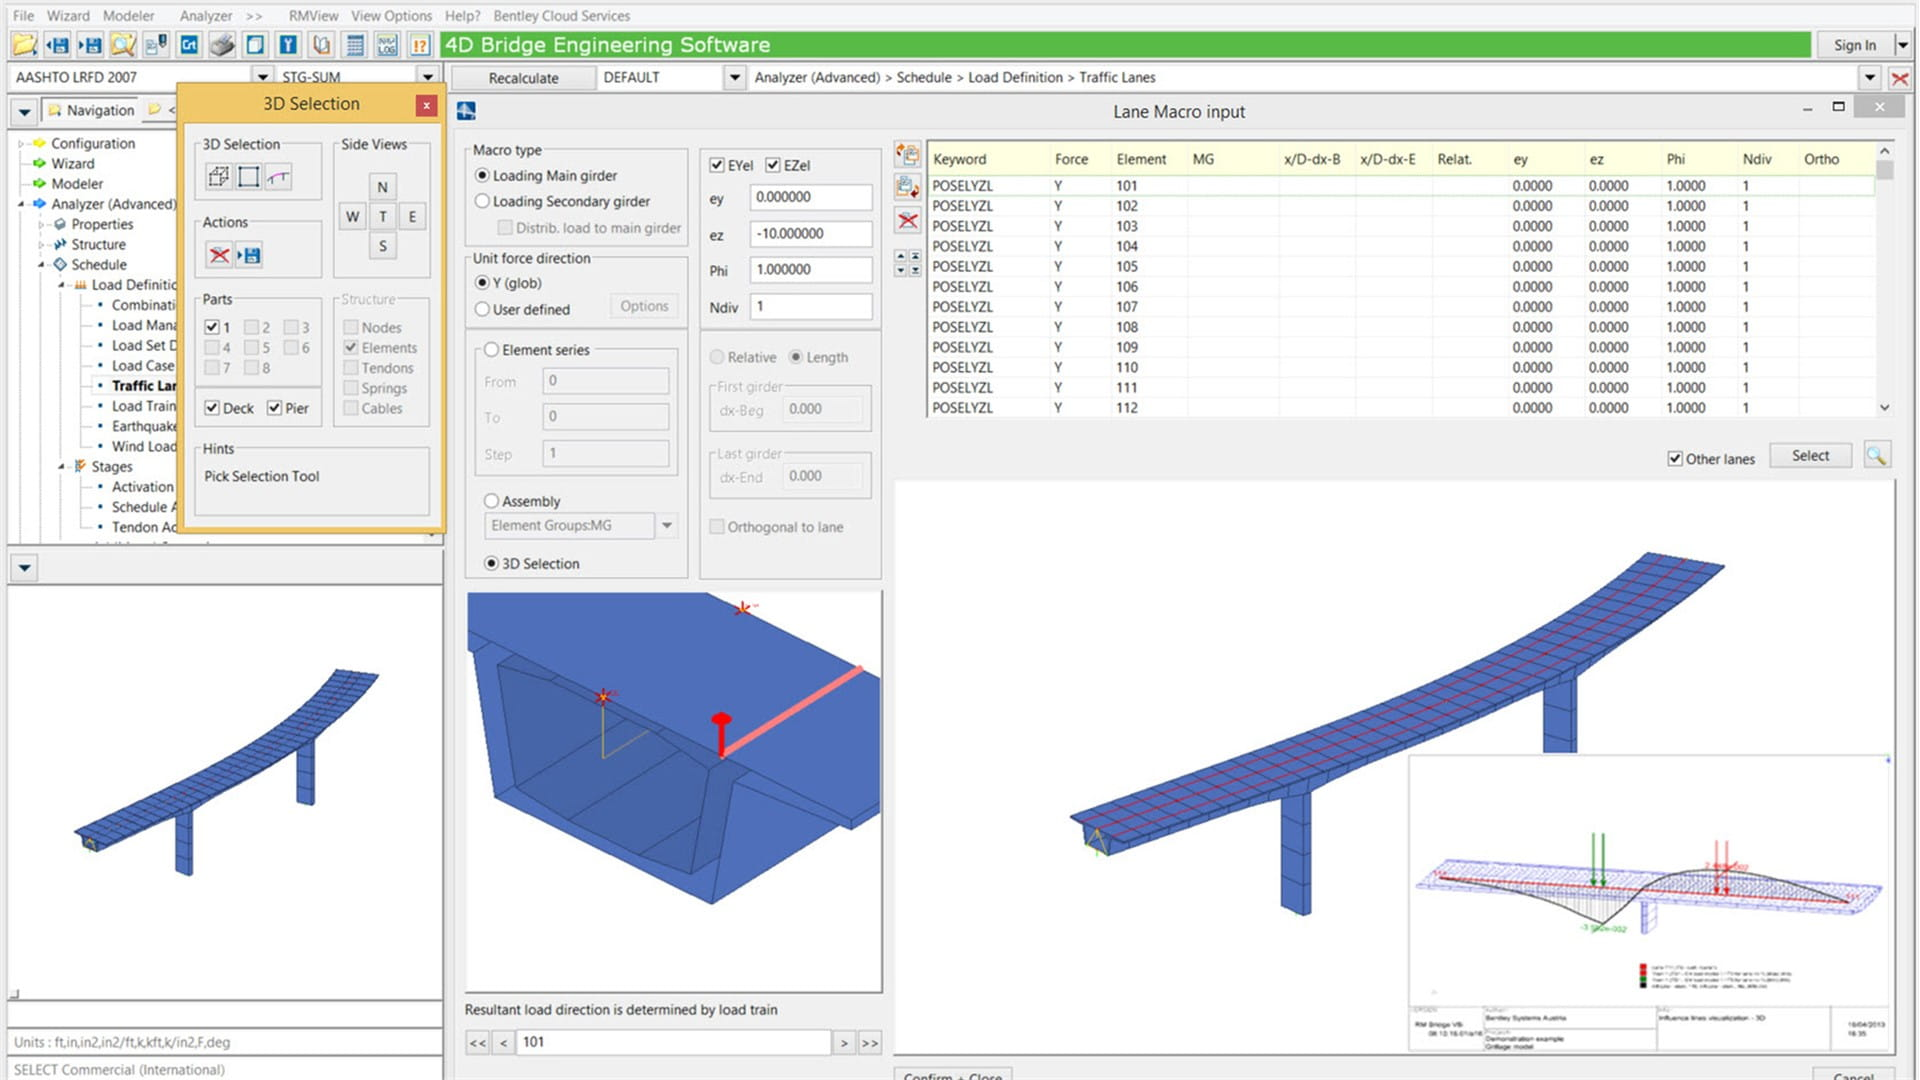 bridge analysis The computer-aided design (cad) files and all associated content posted to this website are created, uploaded, managed and owned by third party users.